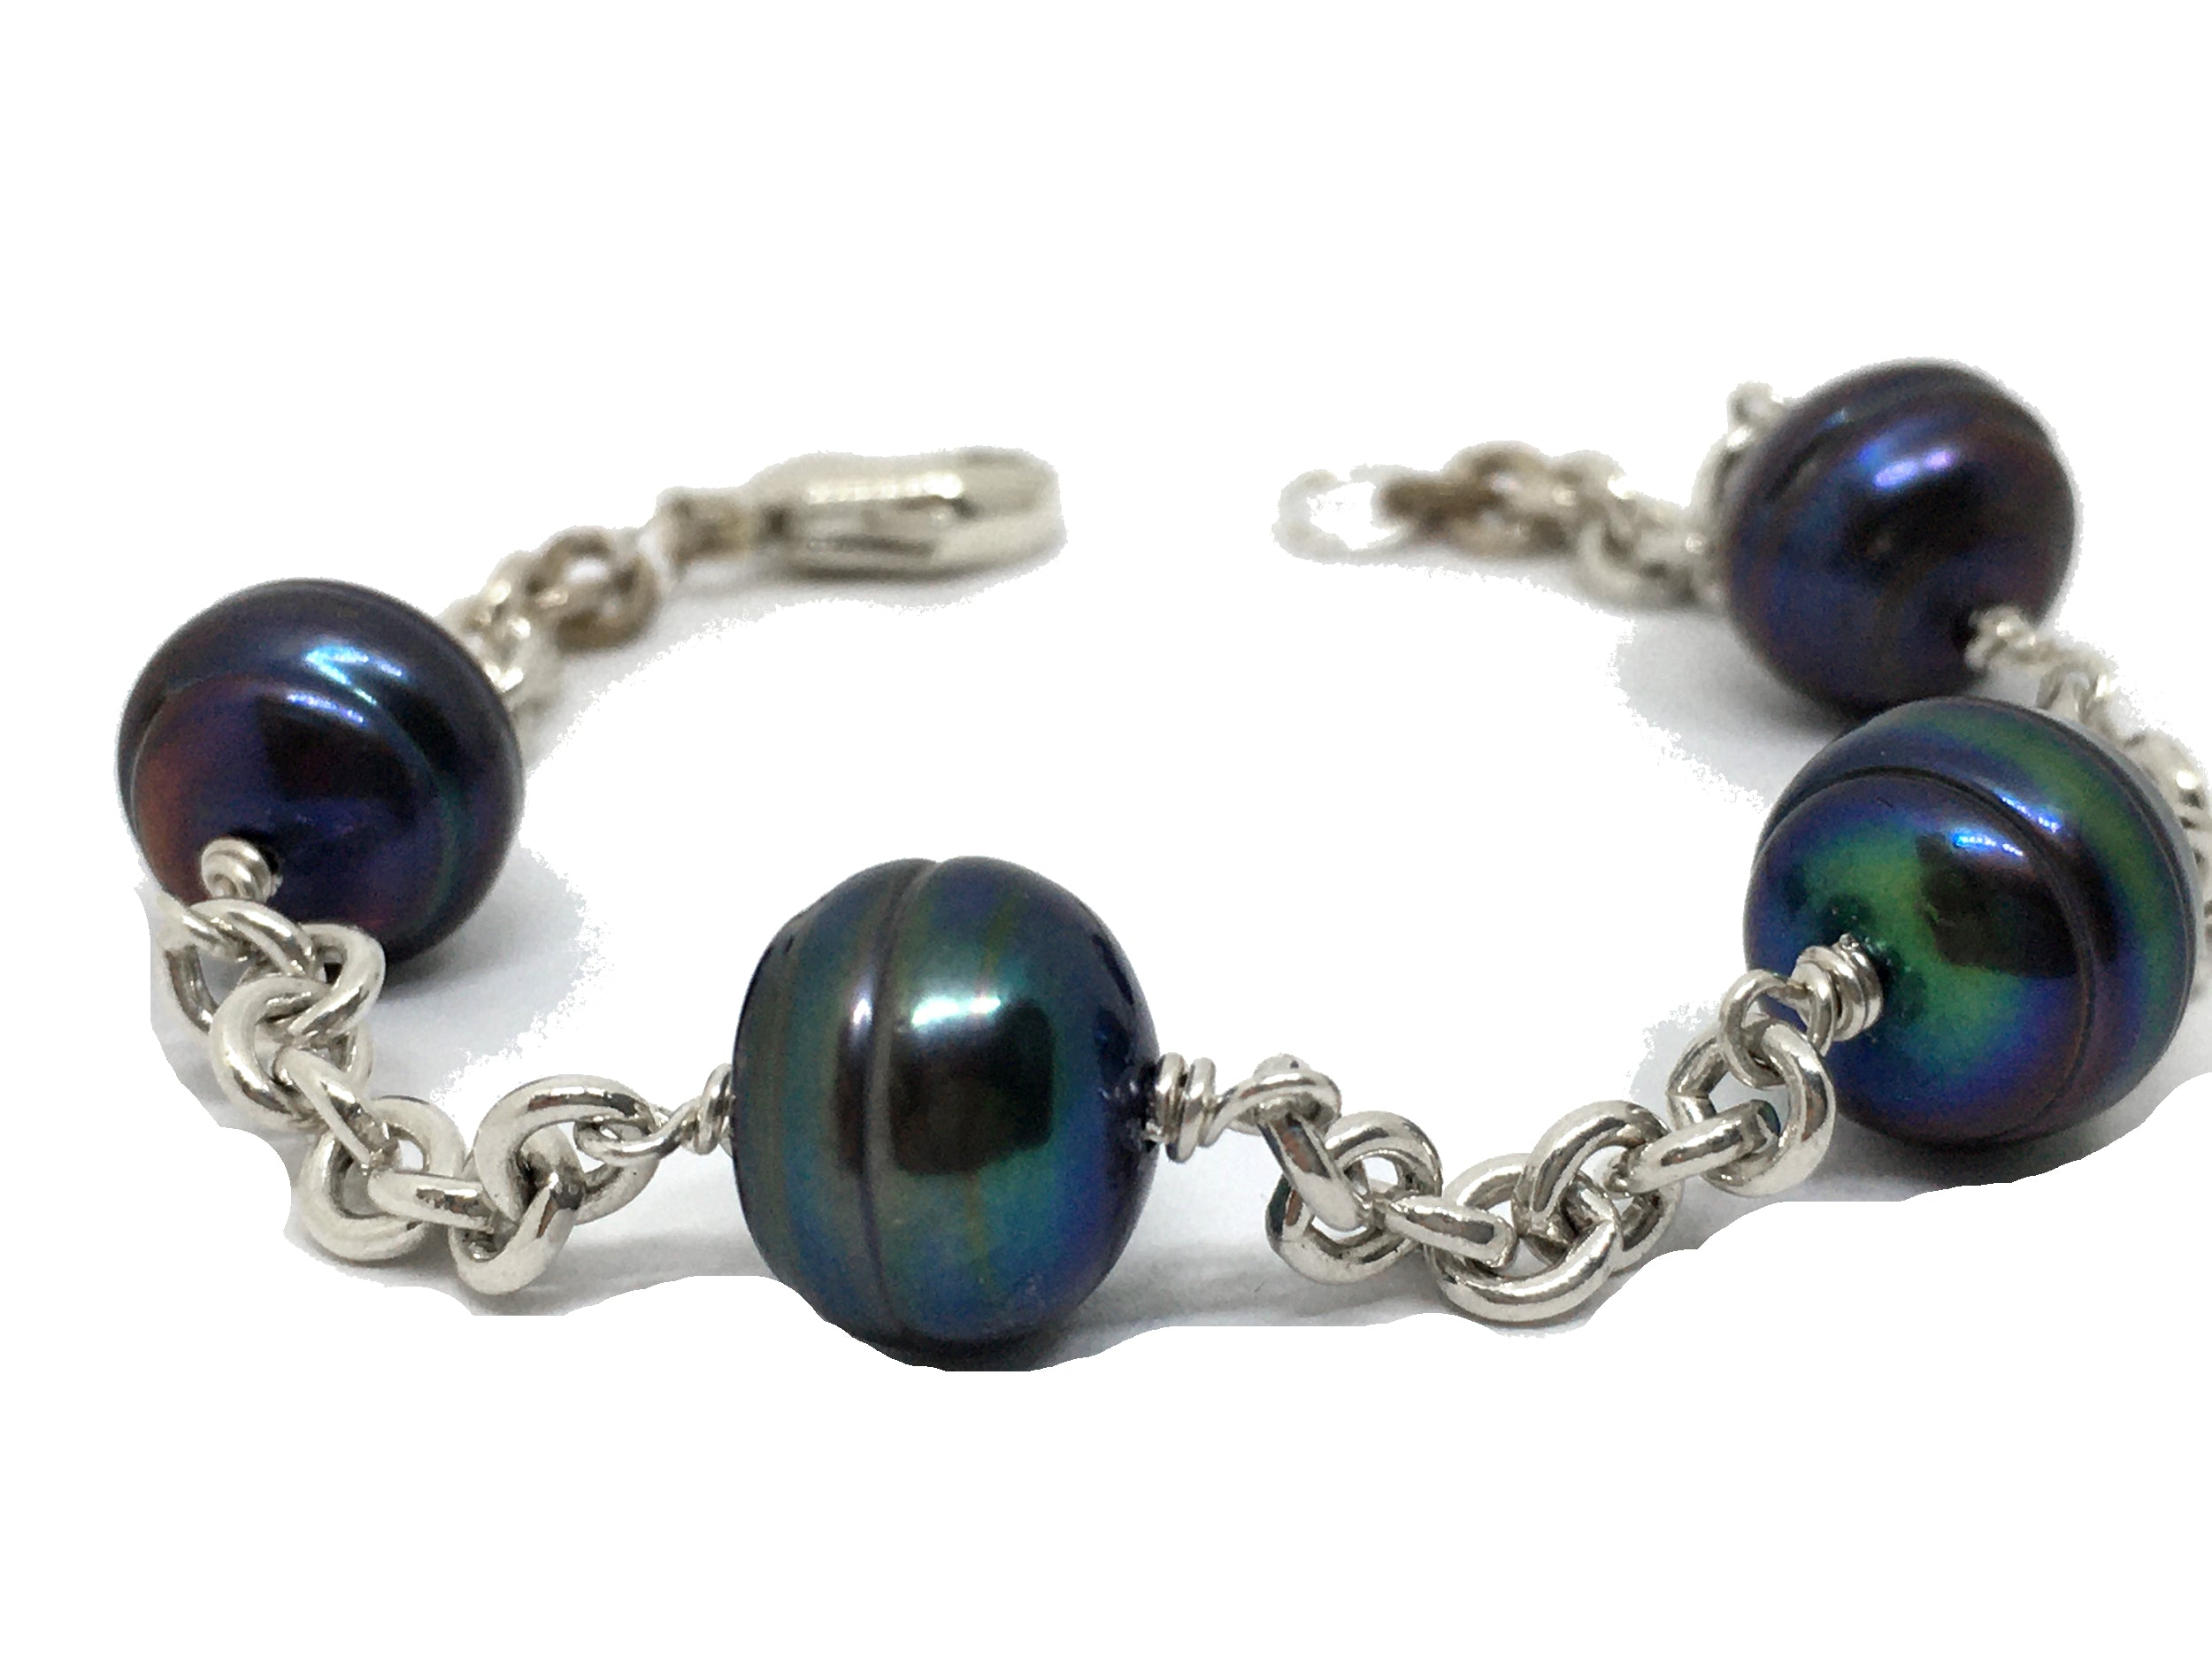 Black peacock baroque pearl station chain bracelet in sterling silver